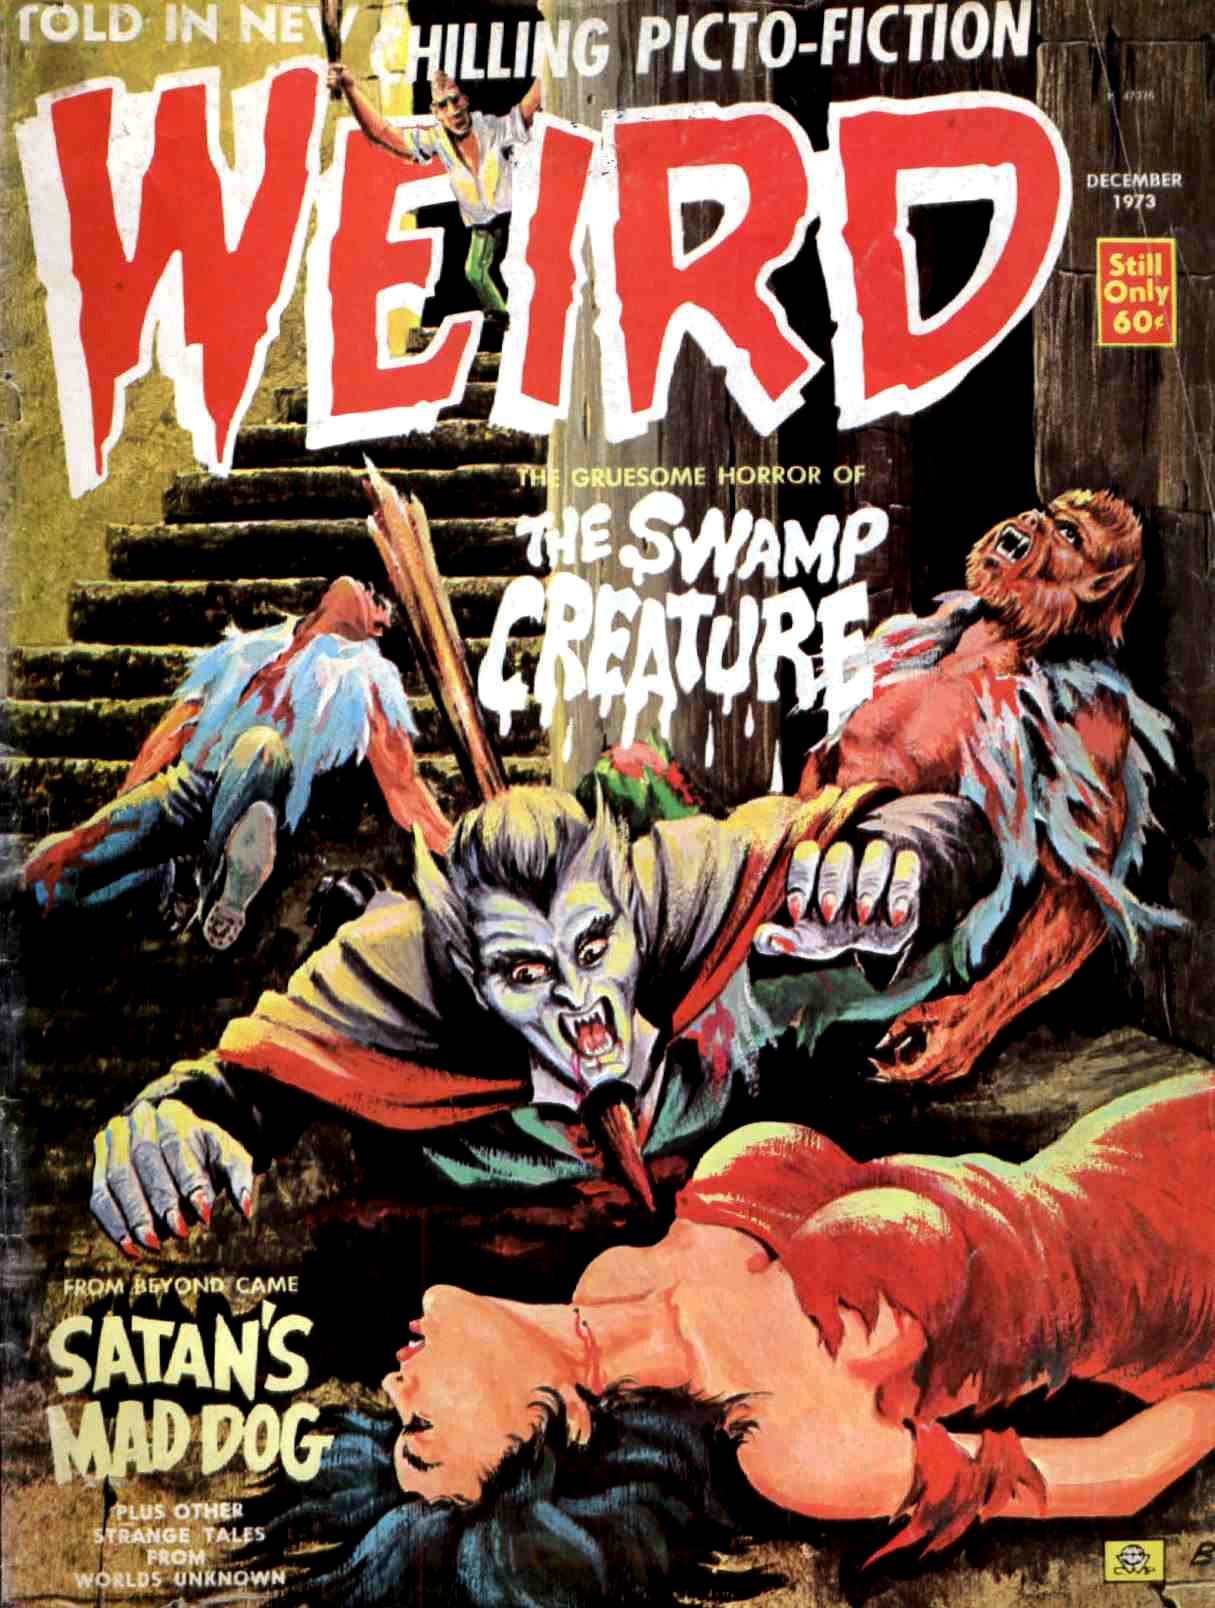 Weird Vol. 07 #7 (Eerie Publications, 1973)